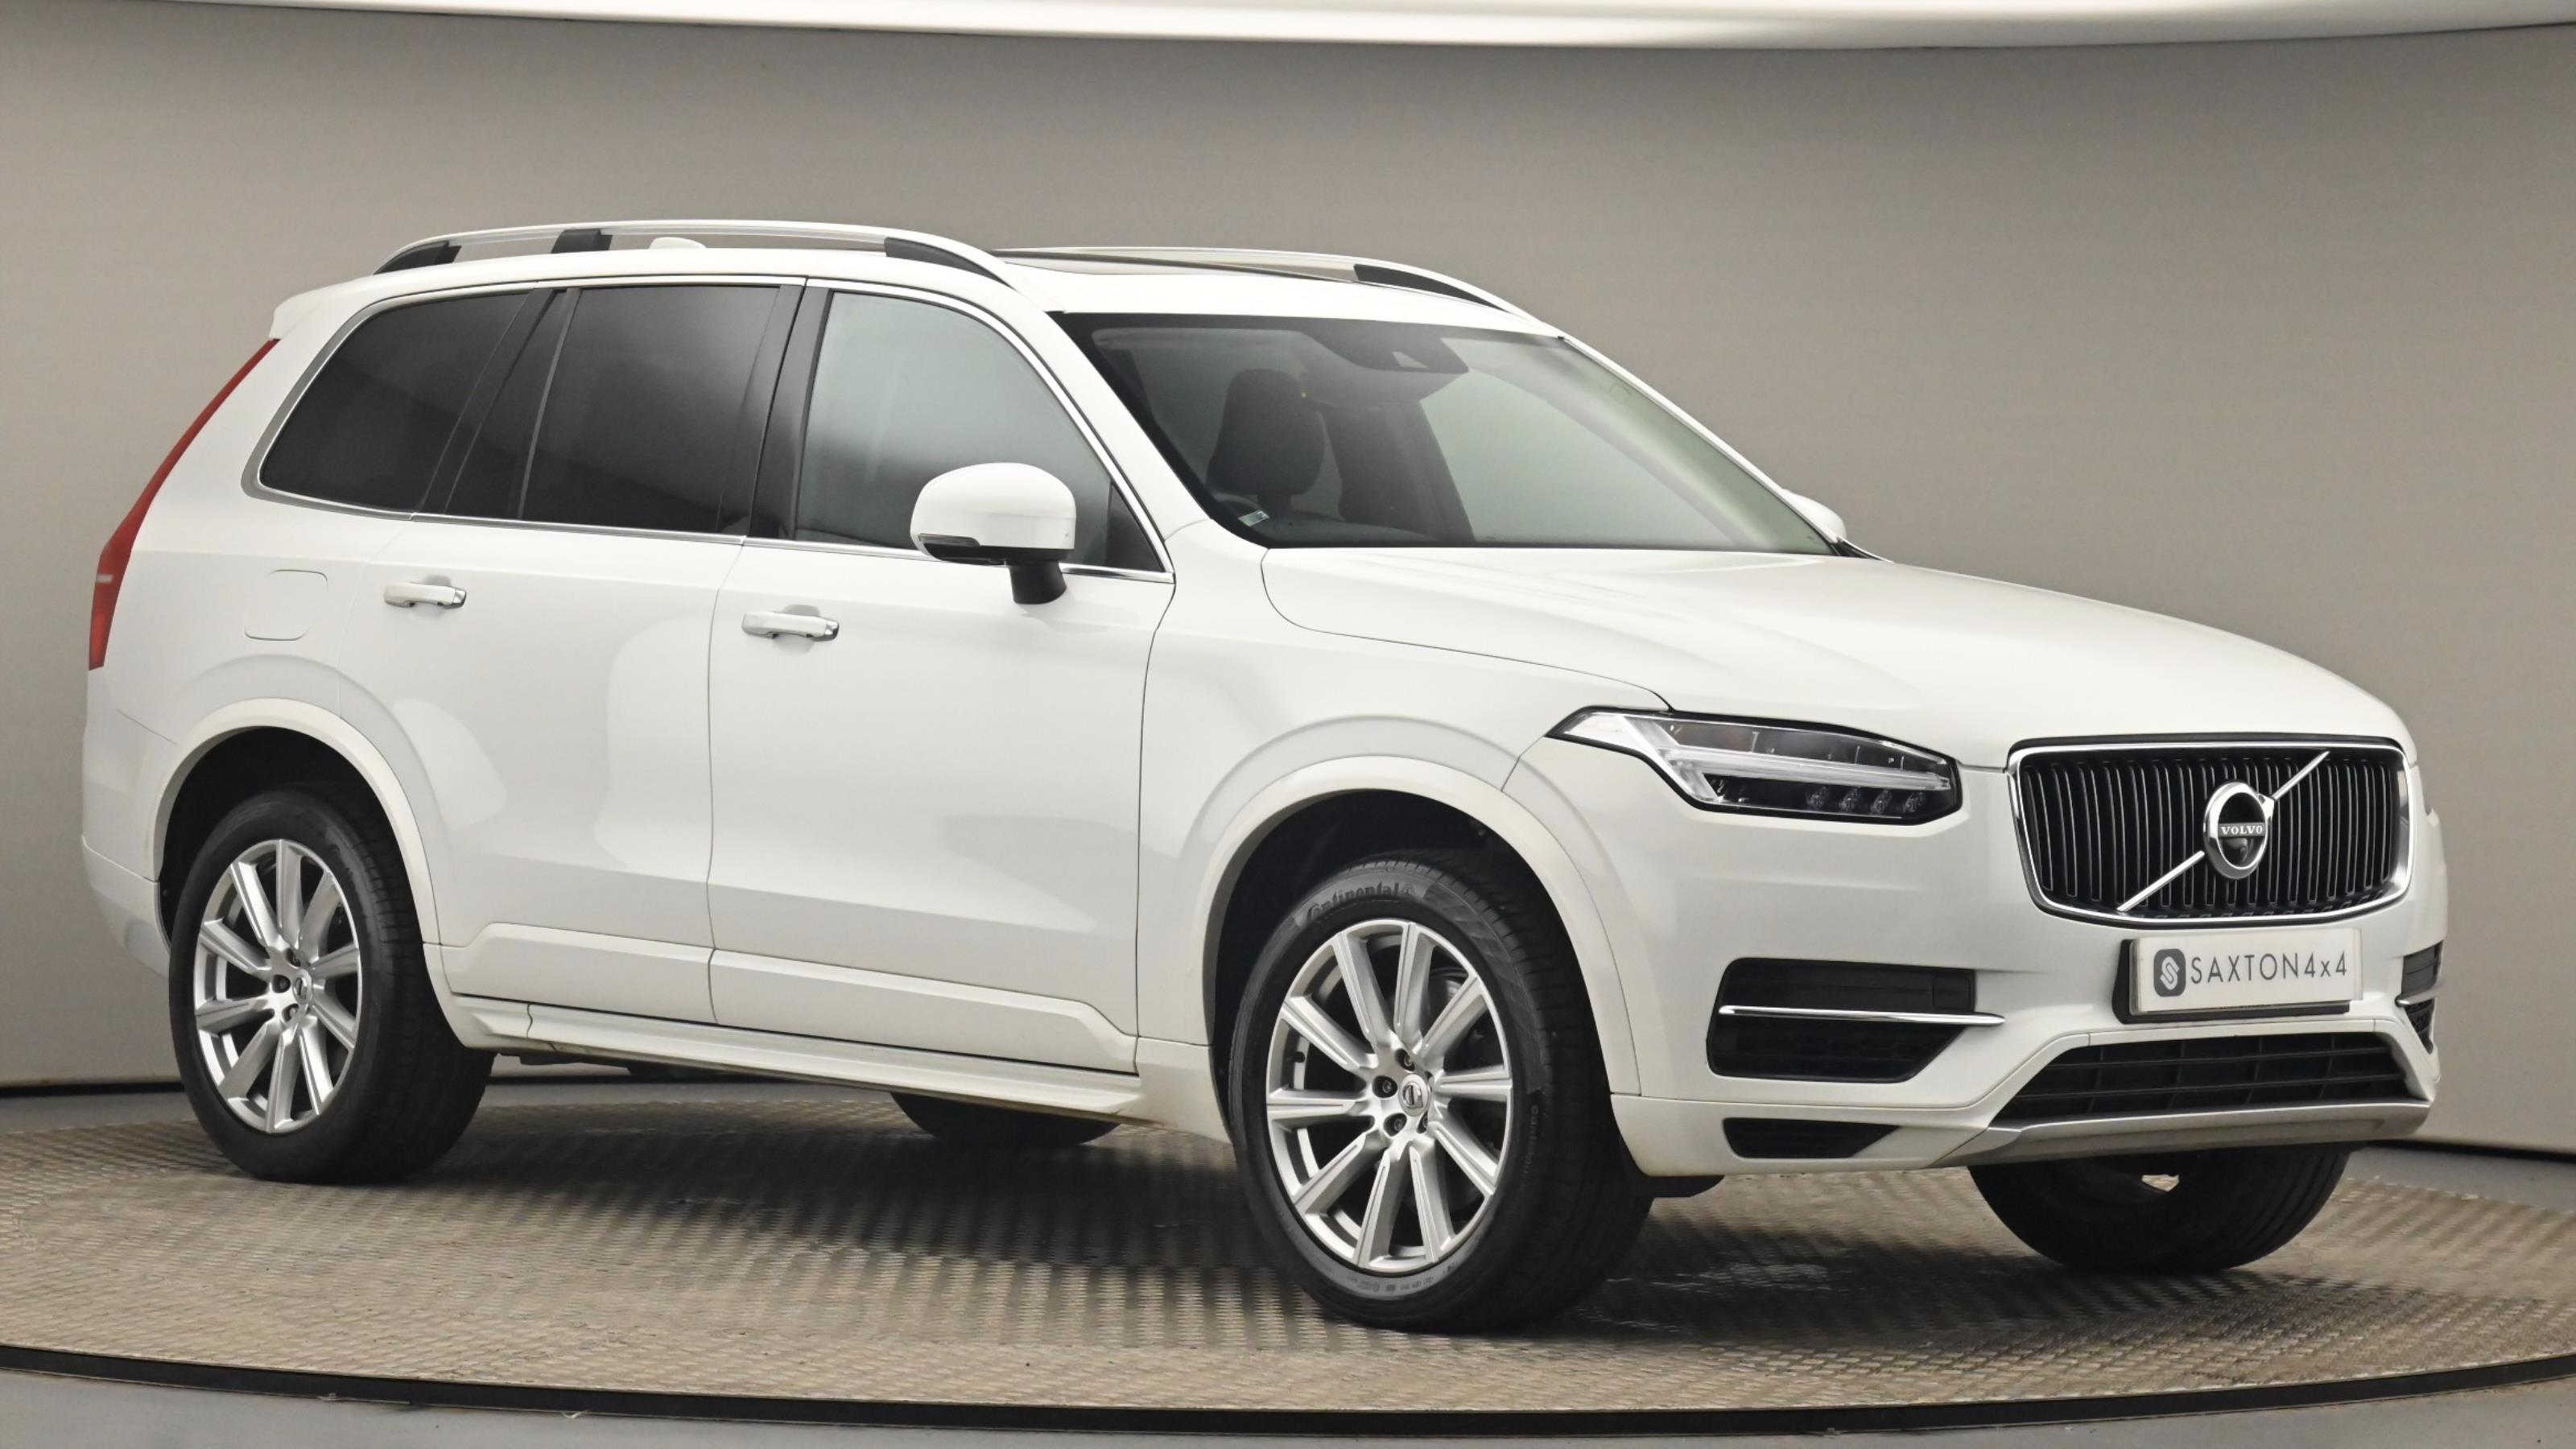 Used 2016 Volvo XC90 2.0 T8 Hybrid Momentum 5dr Geartronic WHITE at Saxton4x4